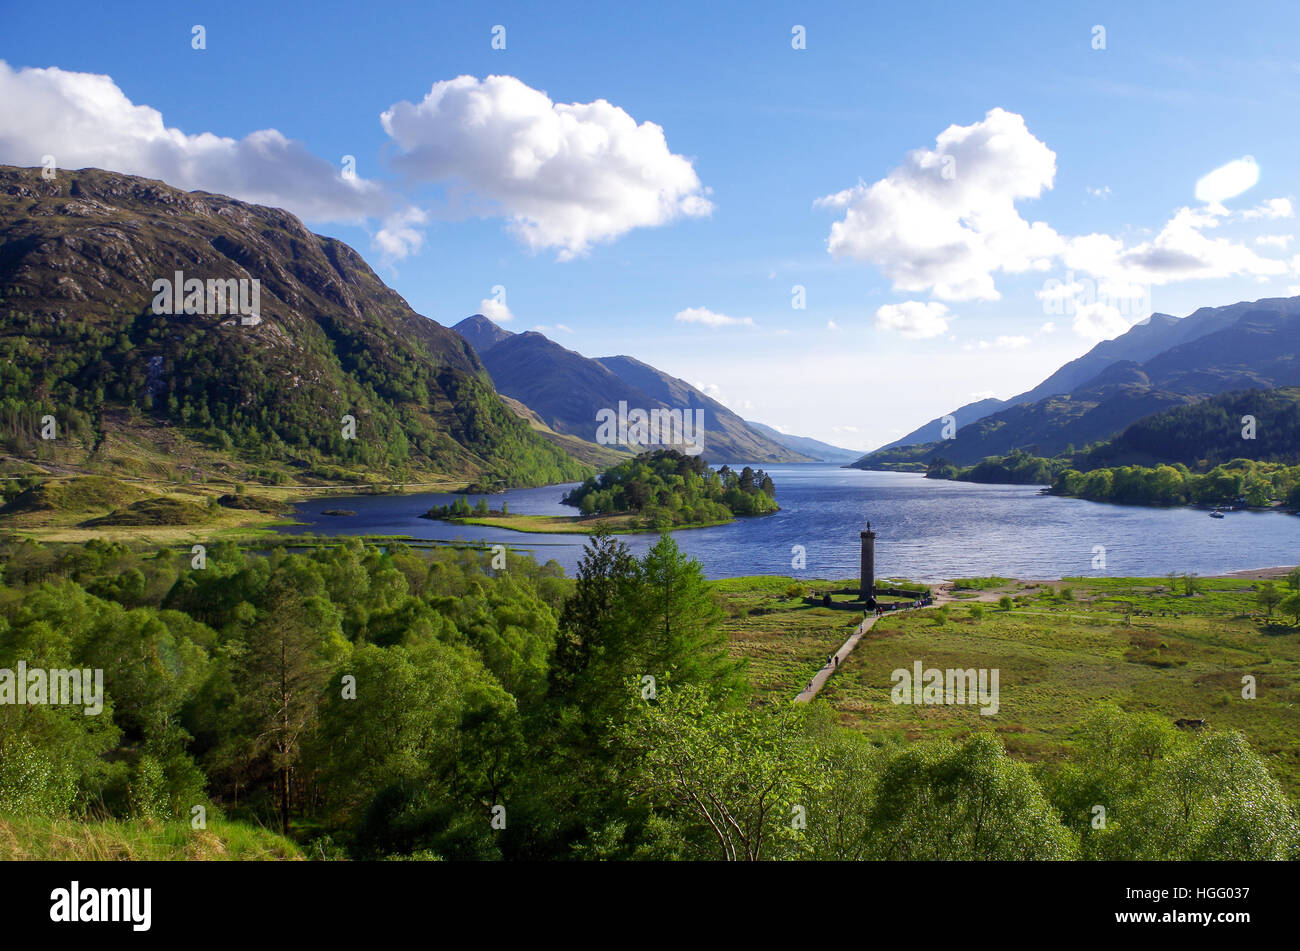 Aerial view of Loch Shiel and Glenfinnan monument in Scotland - Stock Image